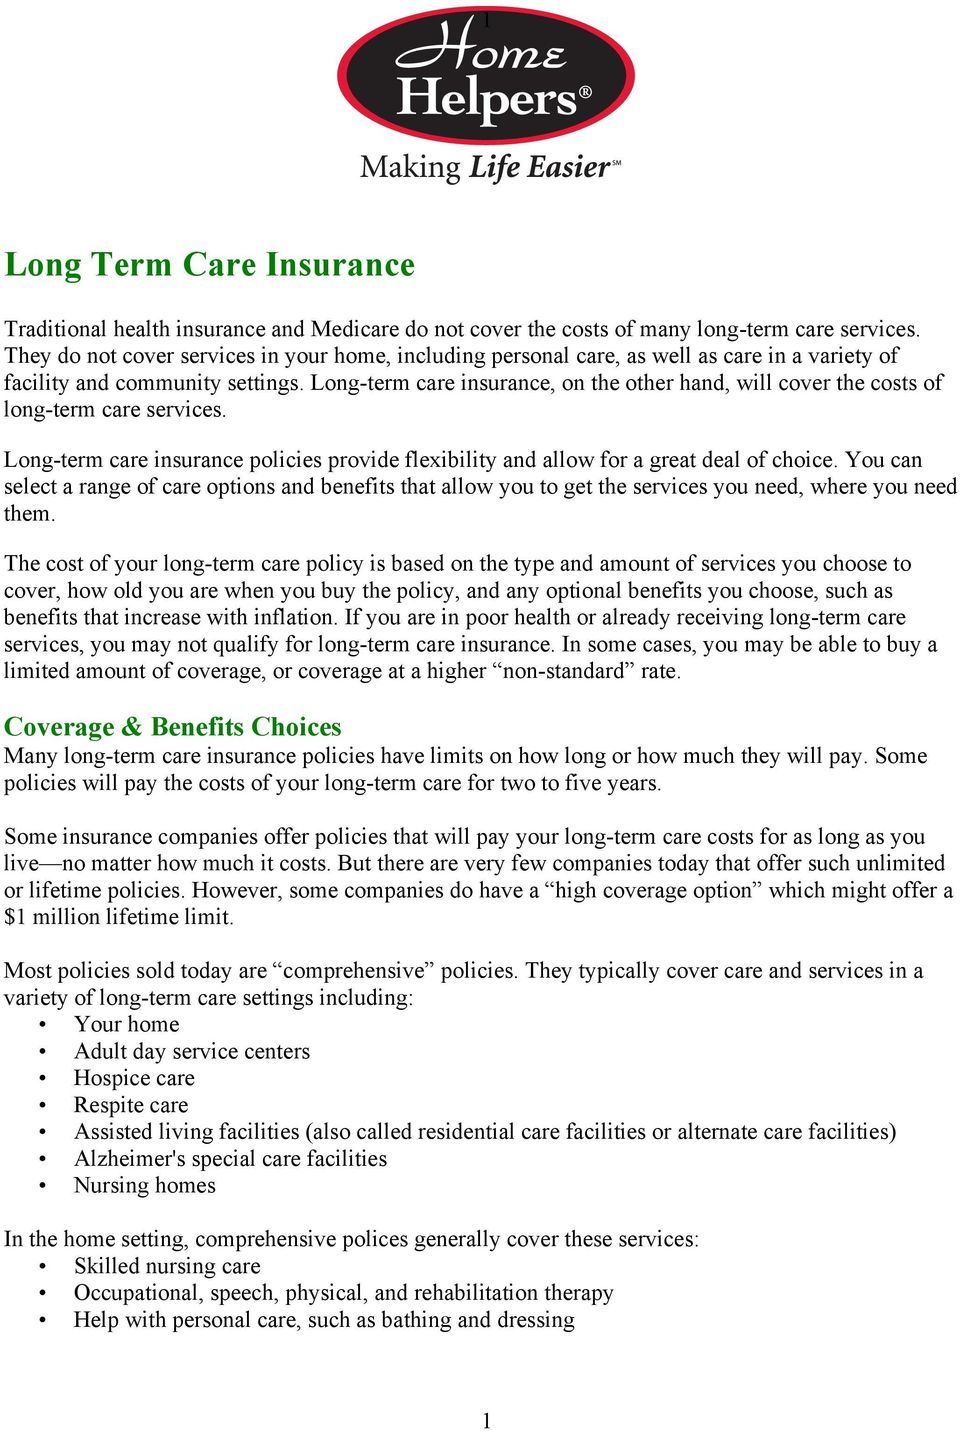 Long-term care insurance, on the other hand, will cover the costs of long-term care services. Long-term care insurance policies provide flexibility and allow for a great deal of choice.